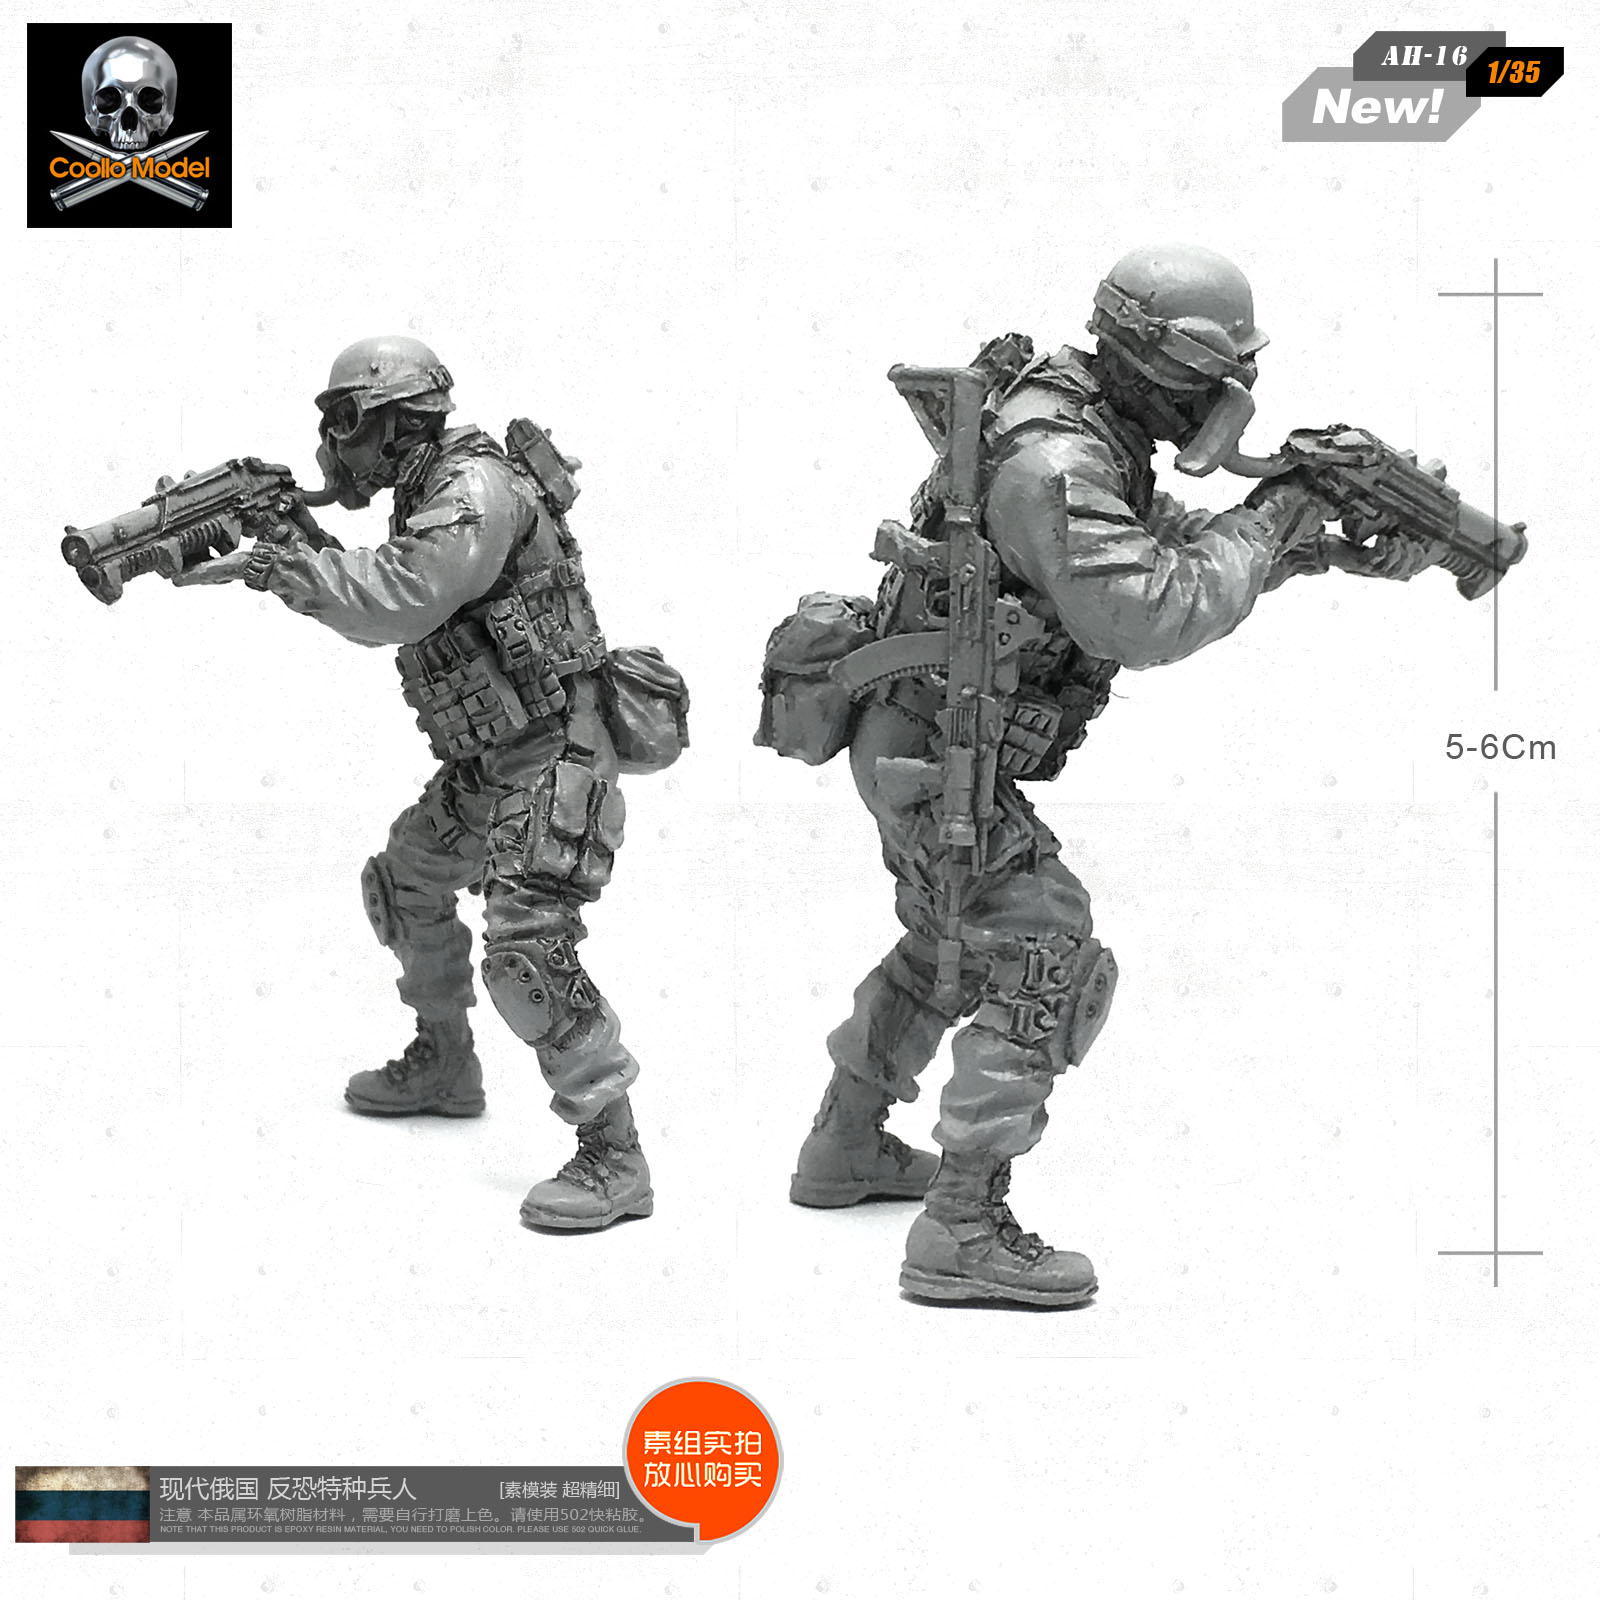 1/35 Resin  Figure Soldier Model  For Special Soldiers Of Modern Russian Anti-terrorist Force AH-16